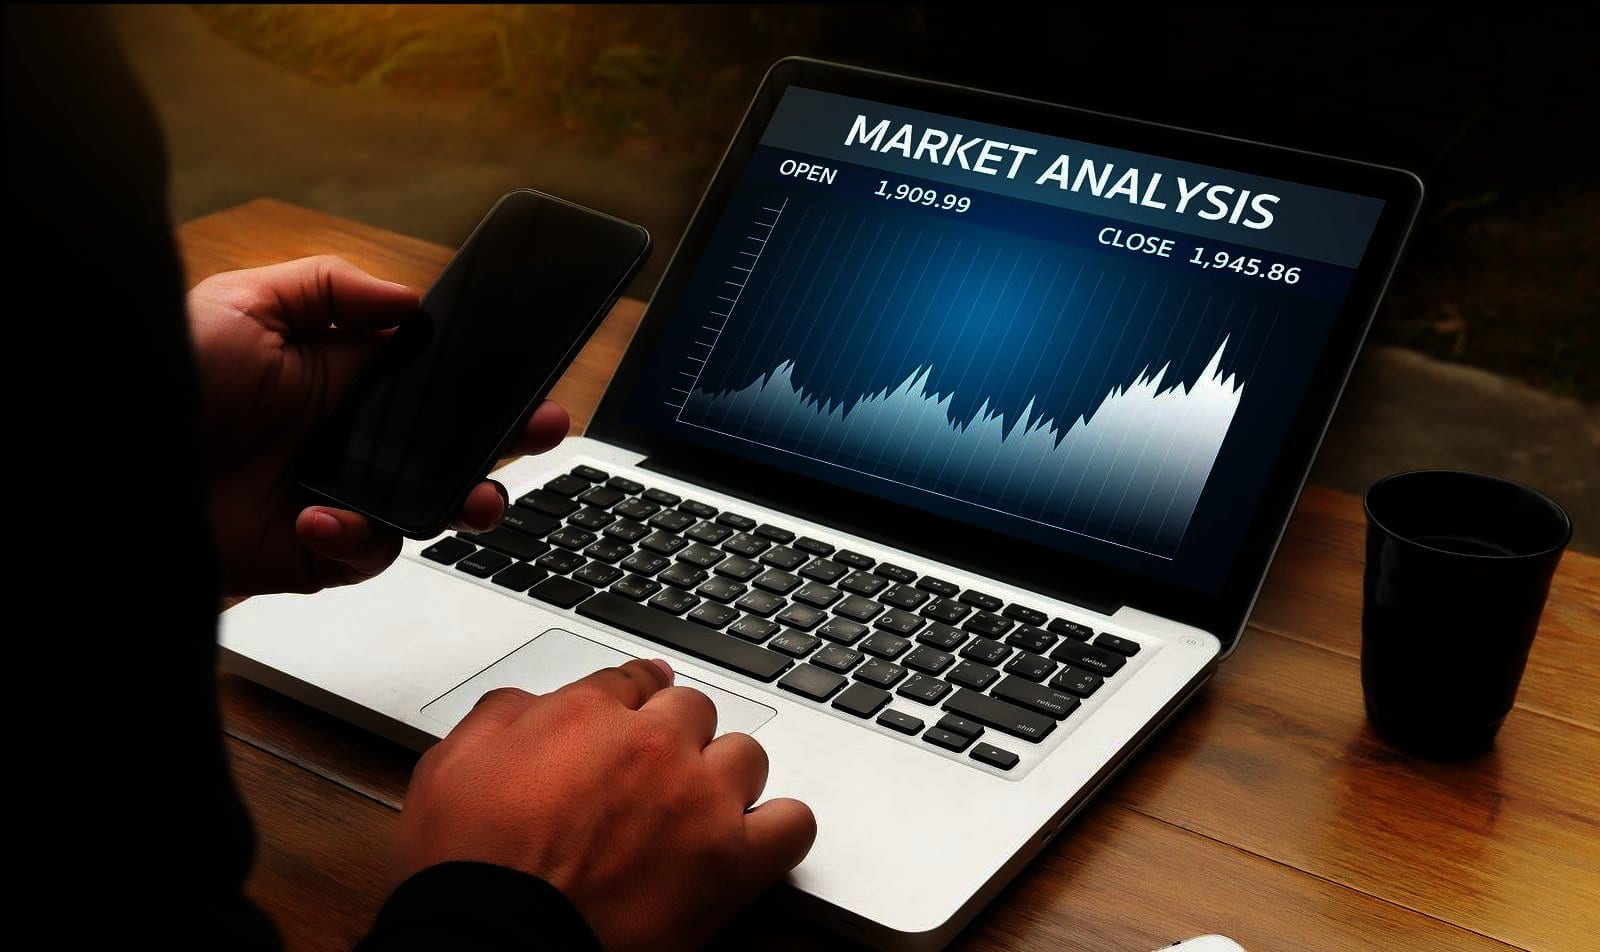 How is Real Estate Market Analysis Different from Stock